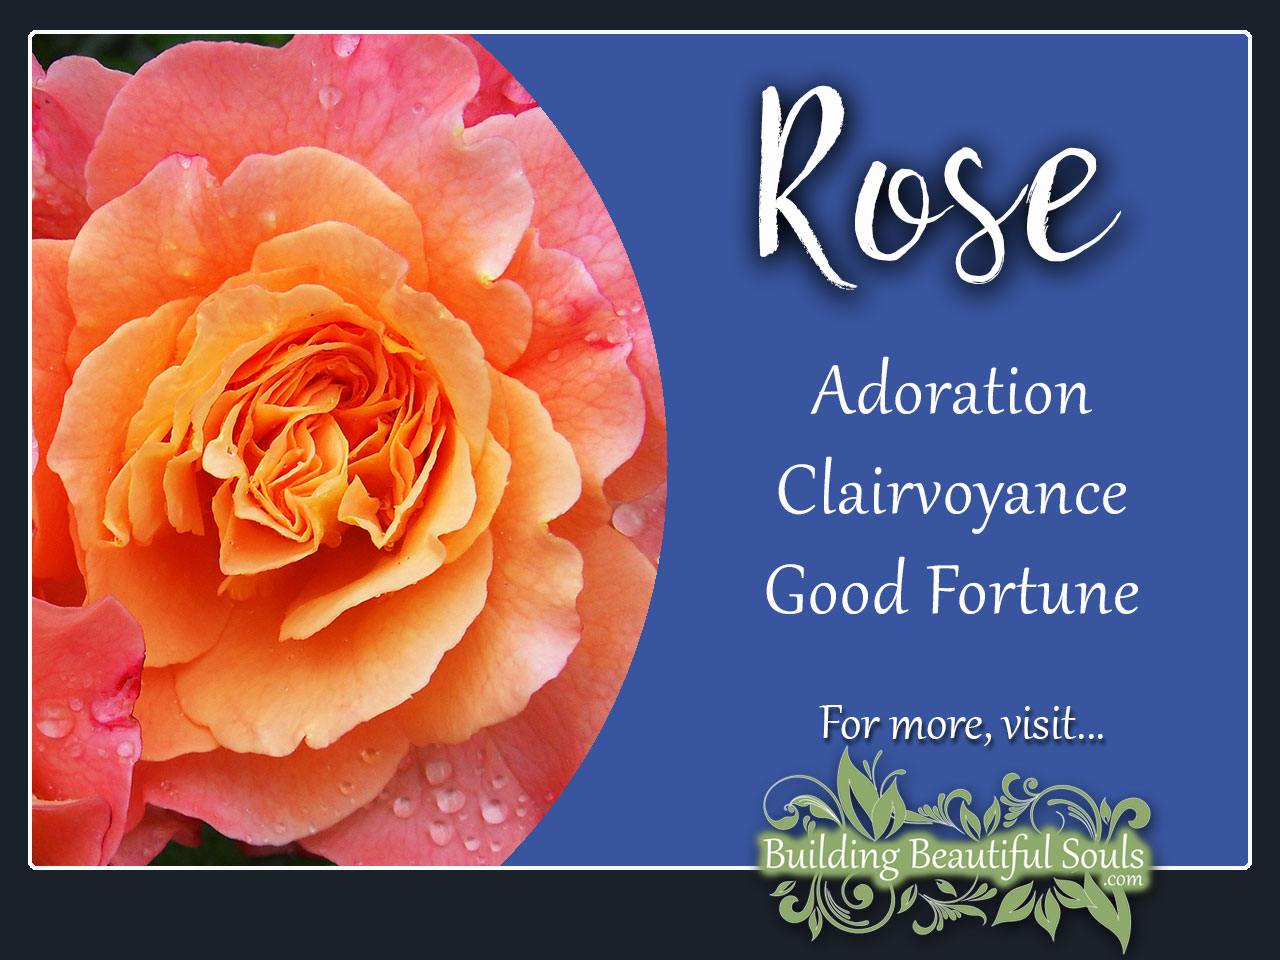 Rose meaning symbolism june birth flower flower meanings rose meaning symbolism flower meanings 1280x960 izmirmasajfo